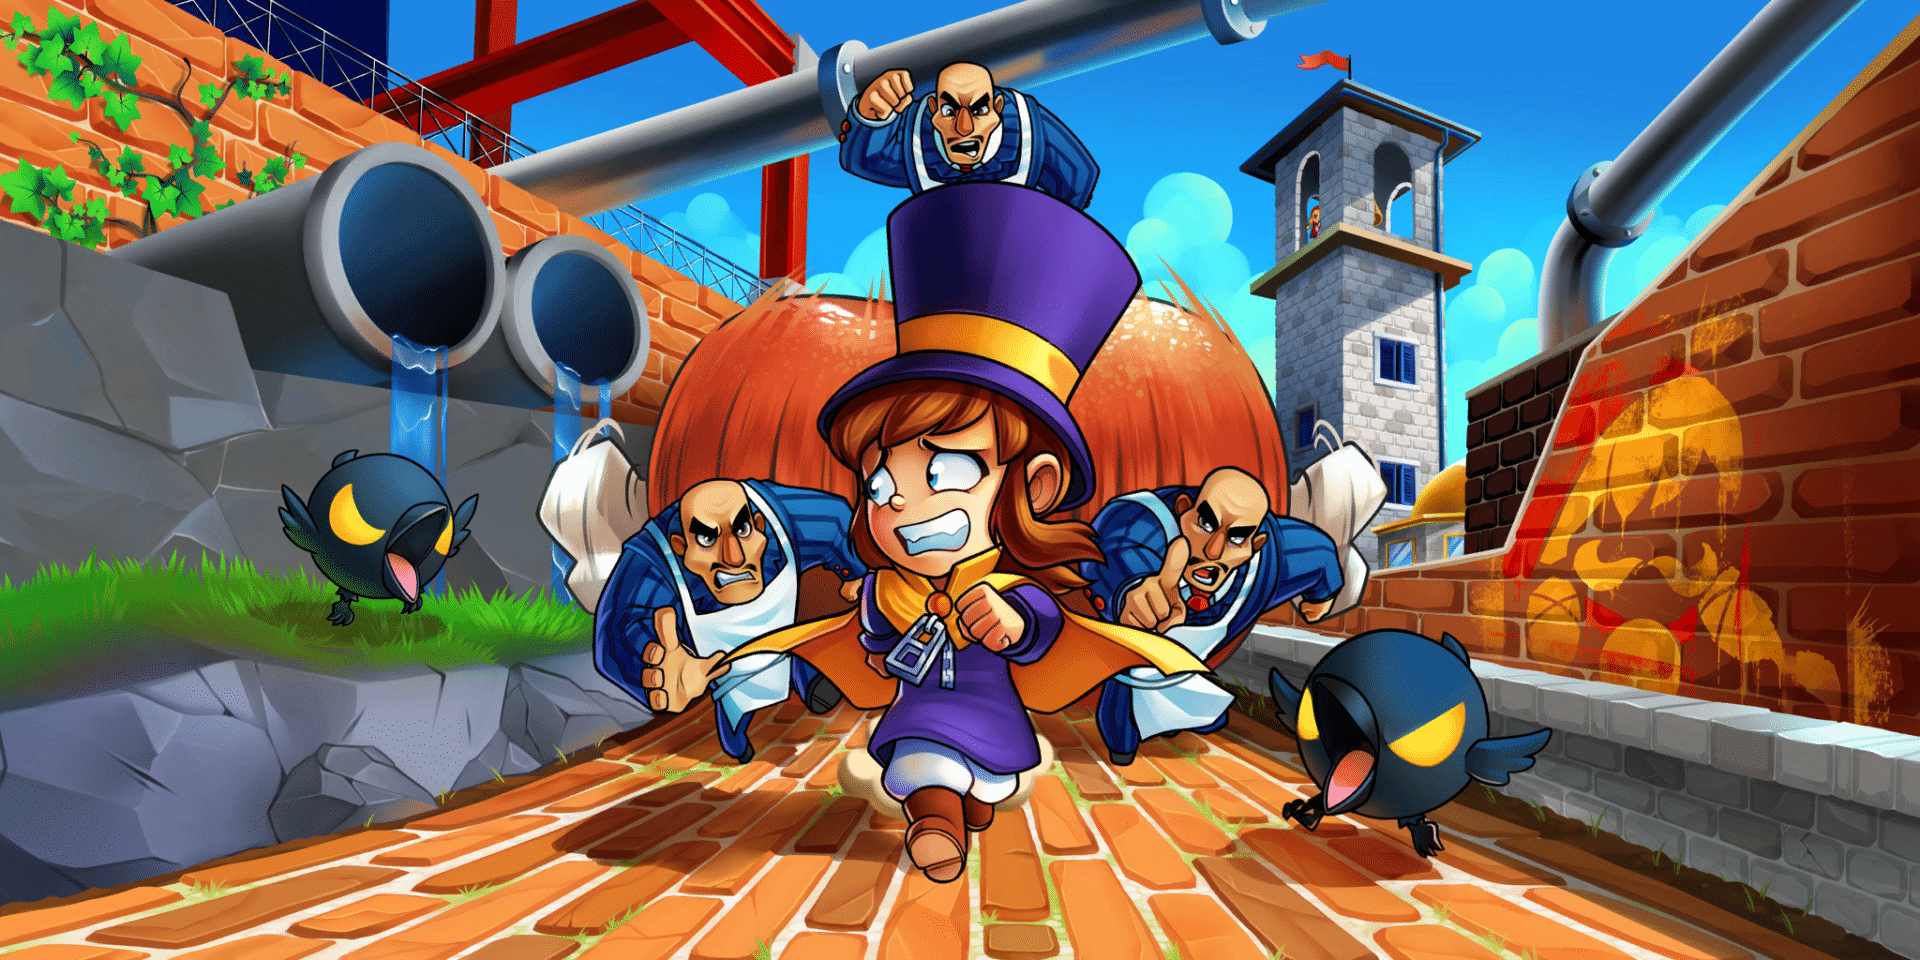 A Hat In Time's cynische humor